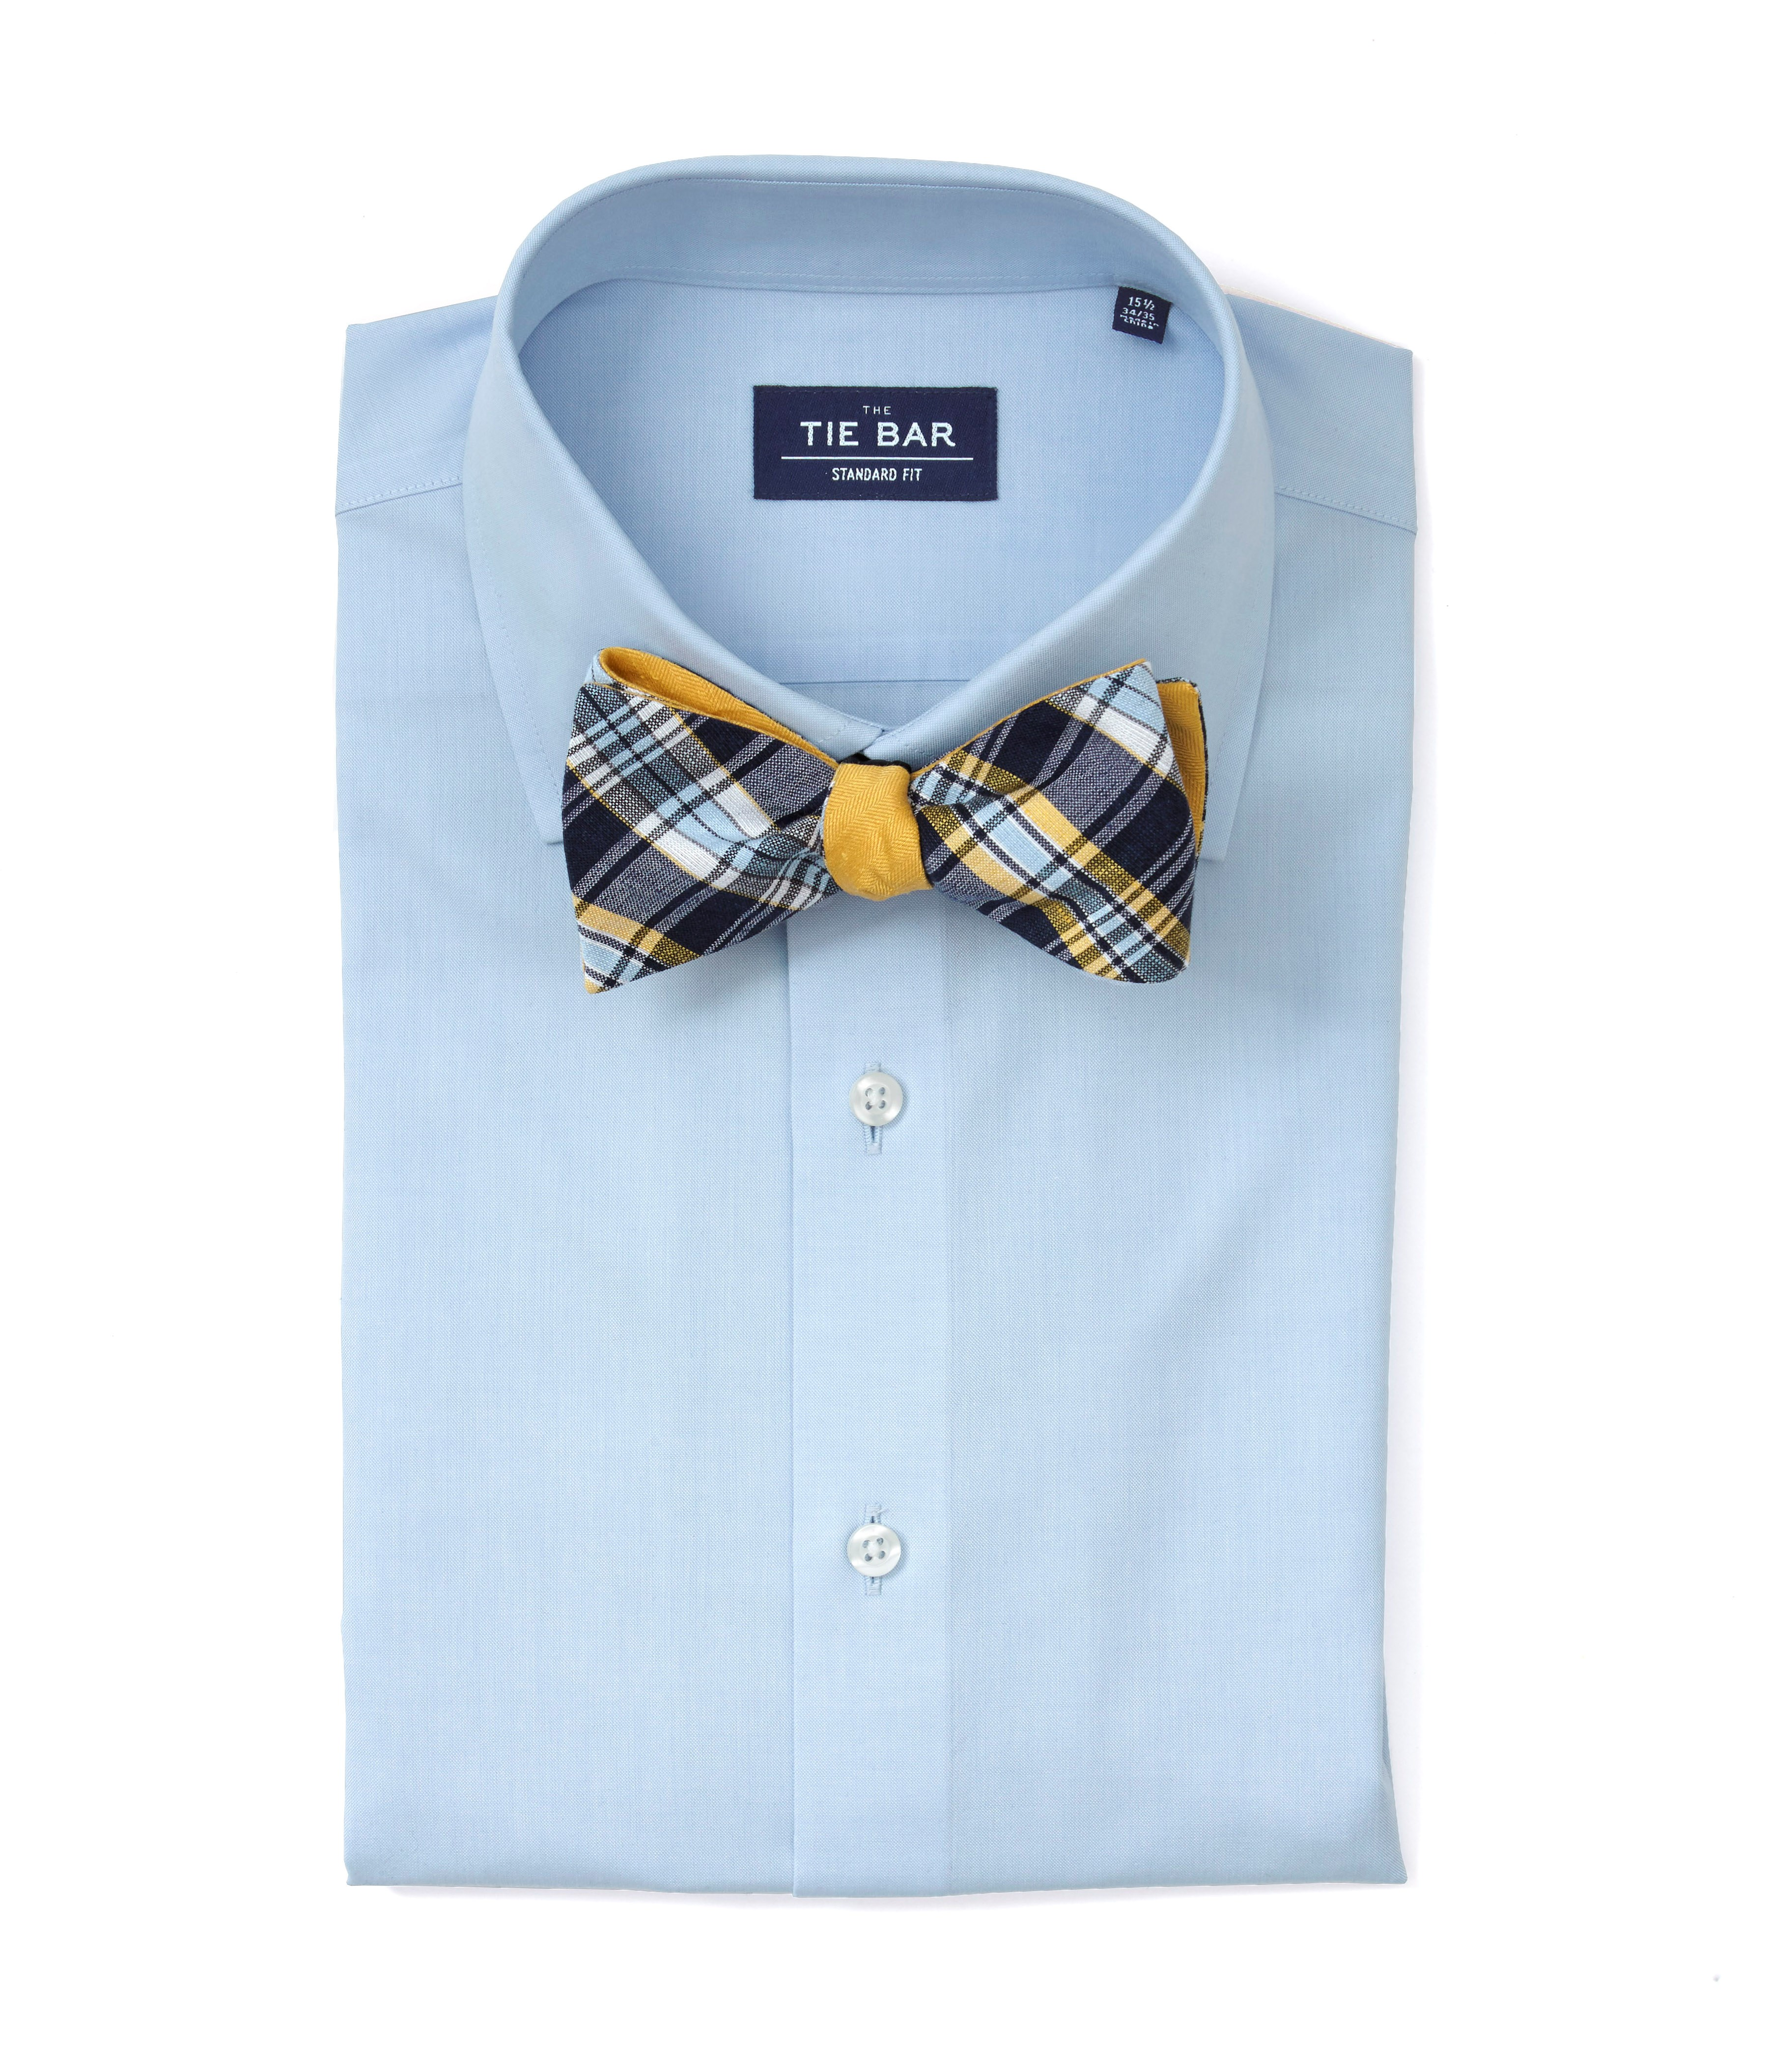 The bow tie shirt combo tie and shirt combinations for Dress shirts and tie combos sale